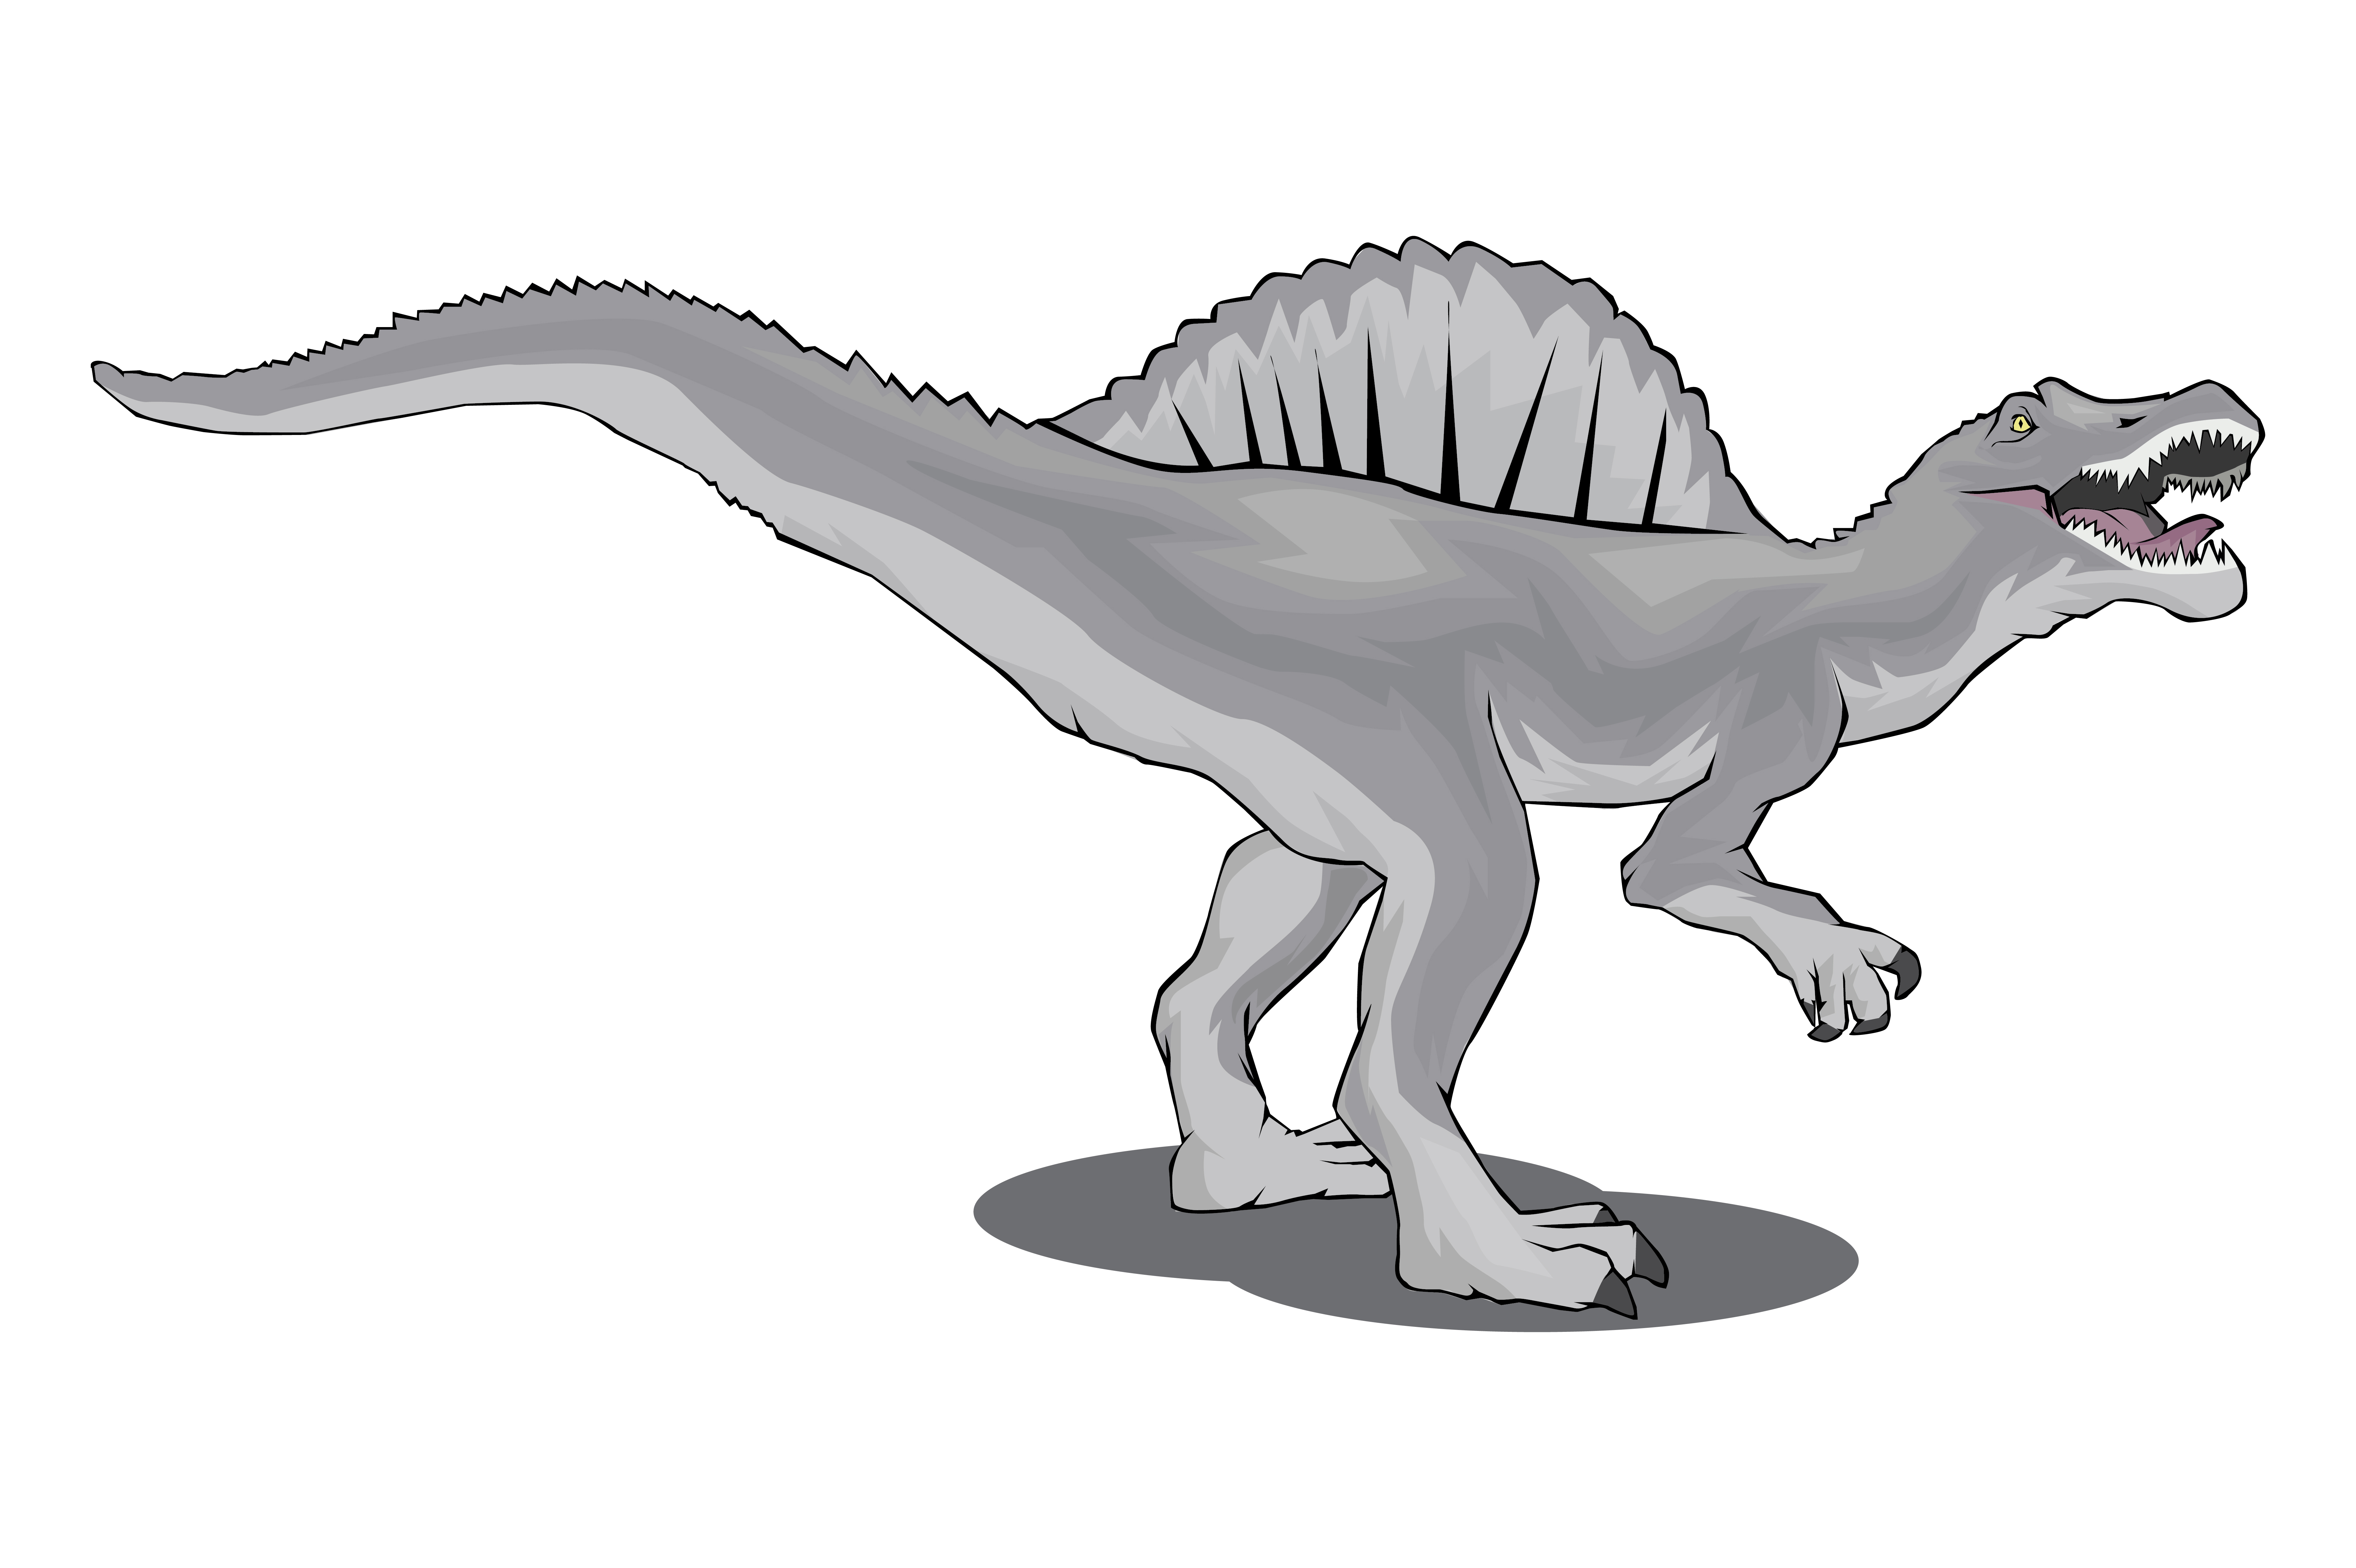 Download Free Dinosaur Ilustration Spinosaurus Graphic By Rfg Creative Fabrica for Cricut Explore, Silhouette and other cutting machines.